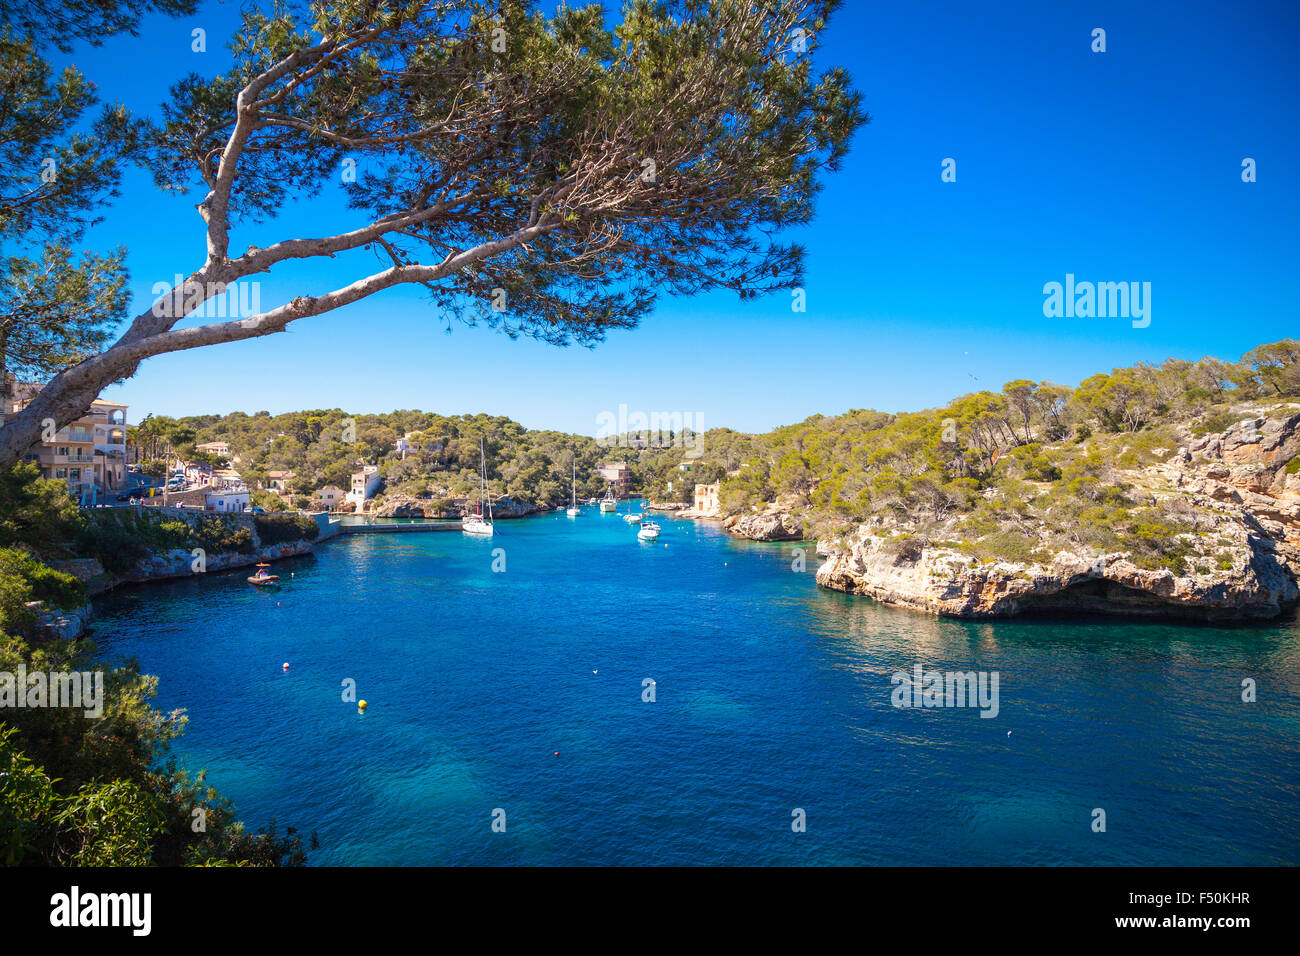 Boats in the harbour of Cala Figueira, Mallorca Stock Photo